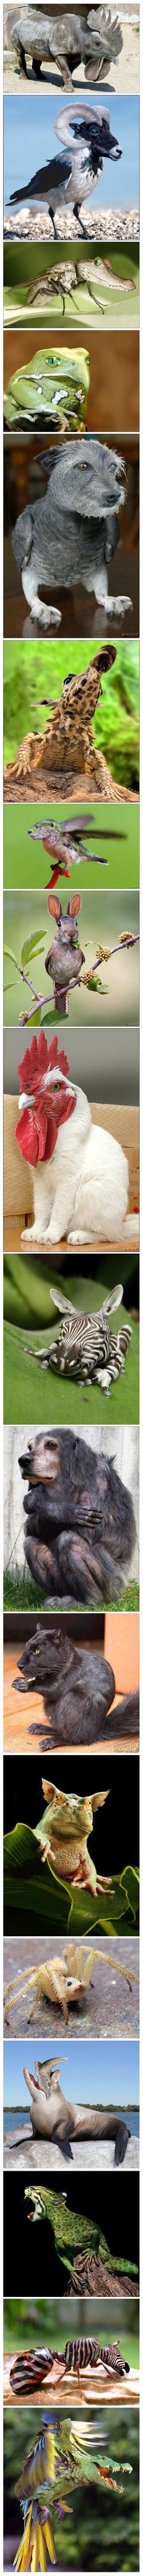 love these hybrid animals